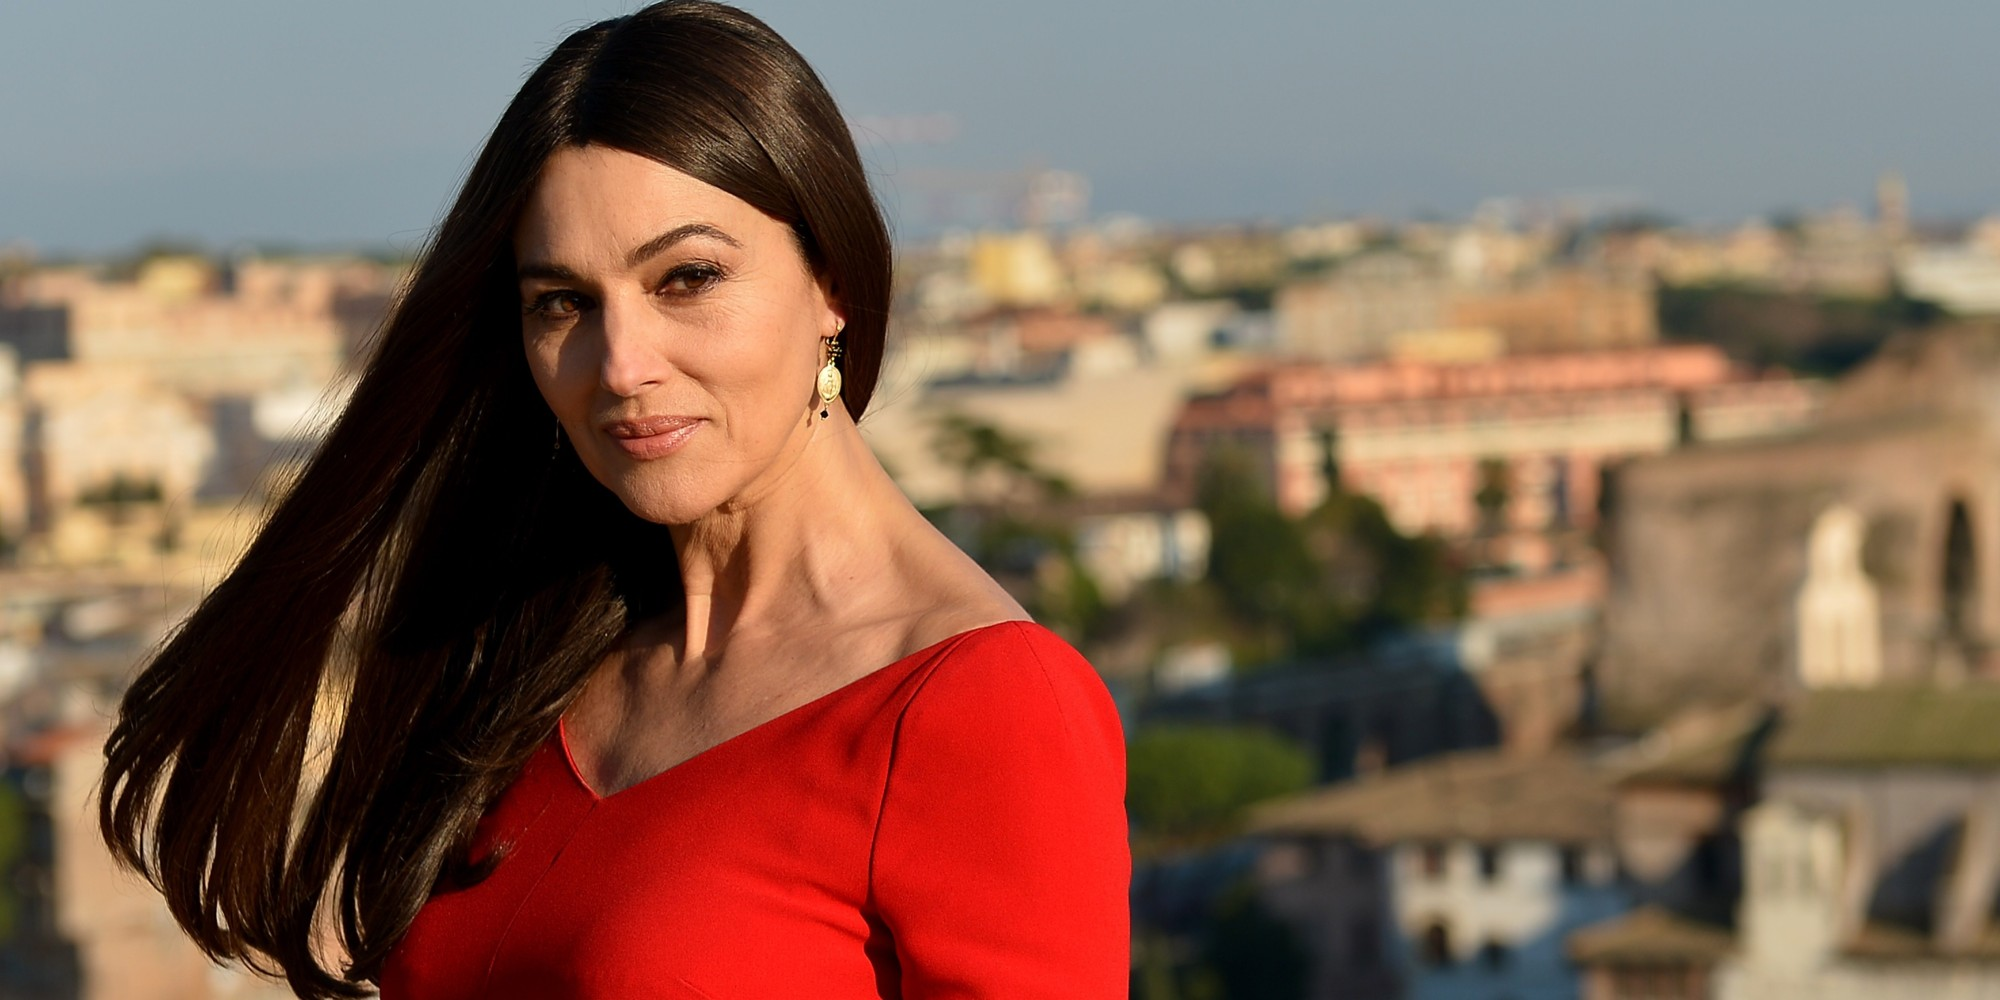 Monica Bellucci Insists She Is A 'Bond Lady' In 'Spectre', After ... Monica Bellucci